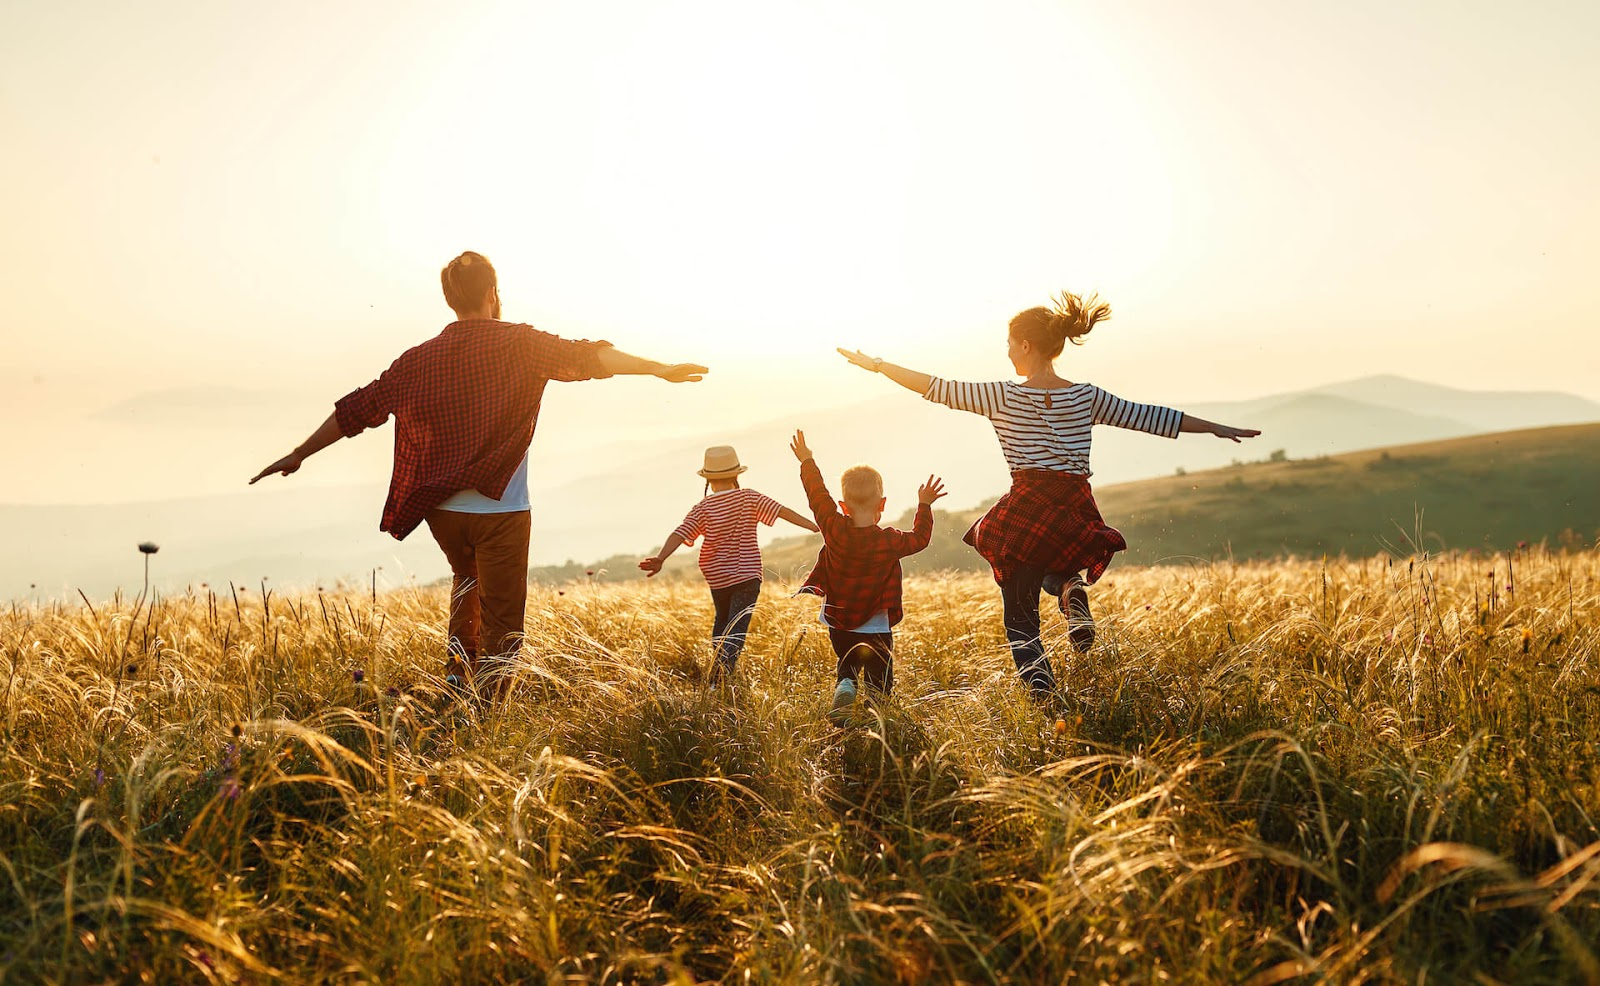 Family frolicking through a field together